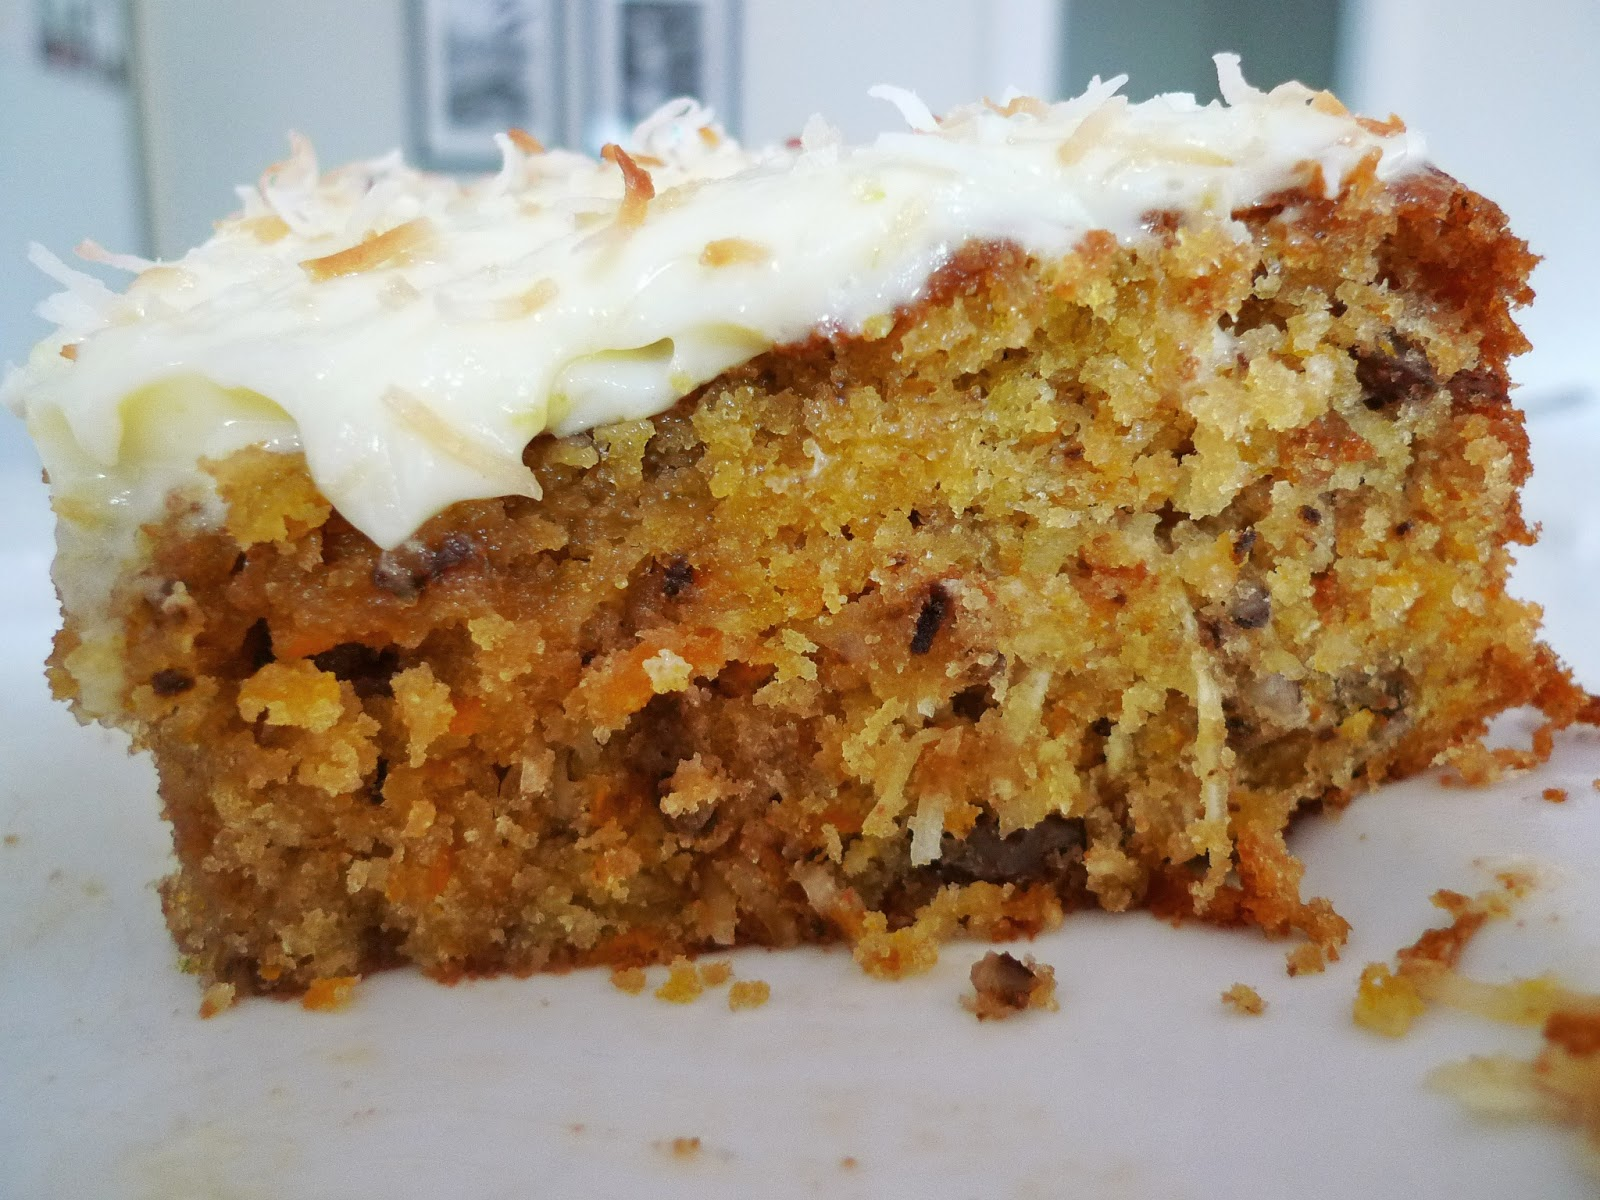 ... Valley Runners - Out & About: Yummy Carrot Cake Recipe from Sunday